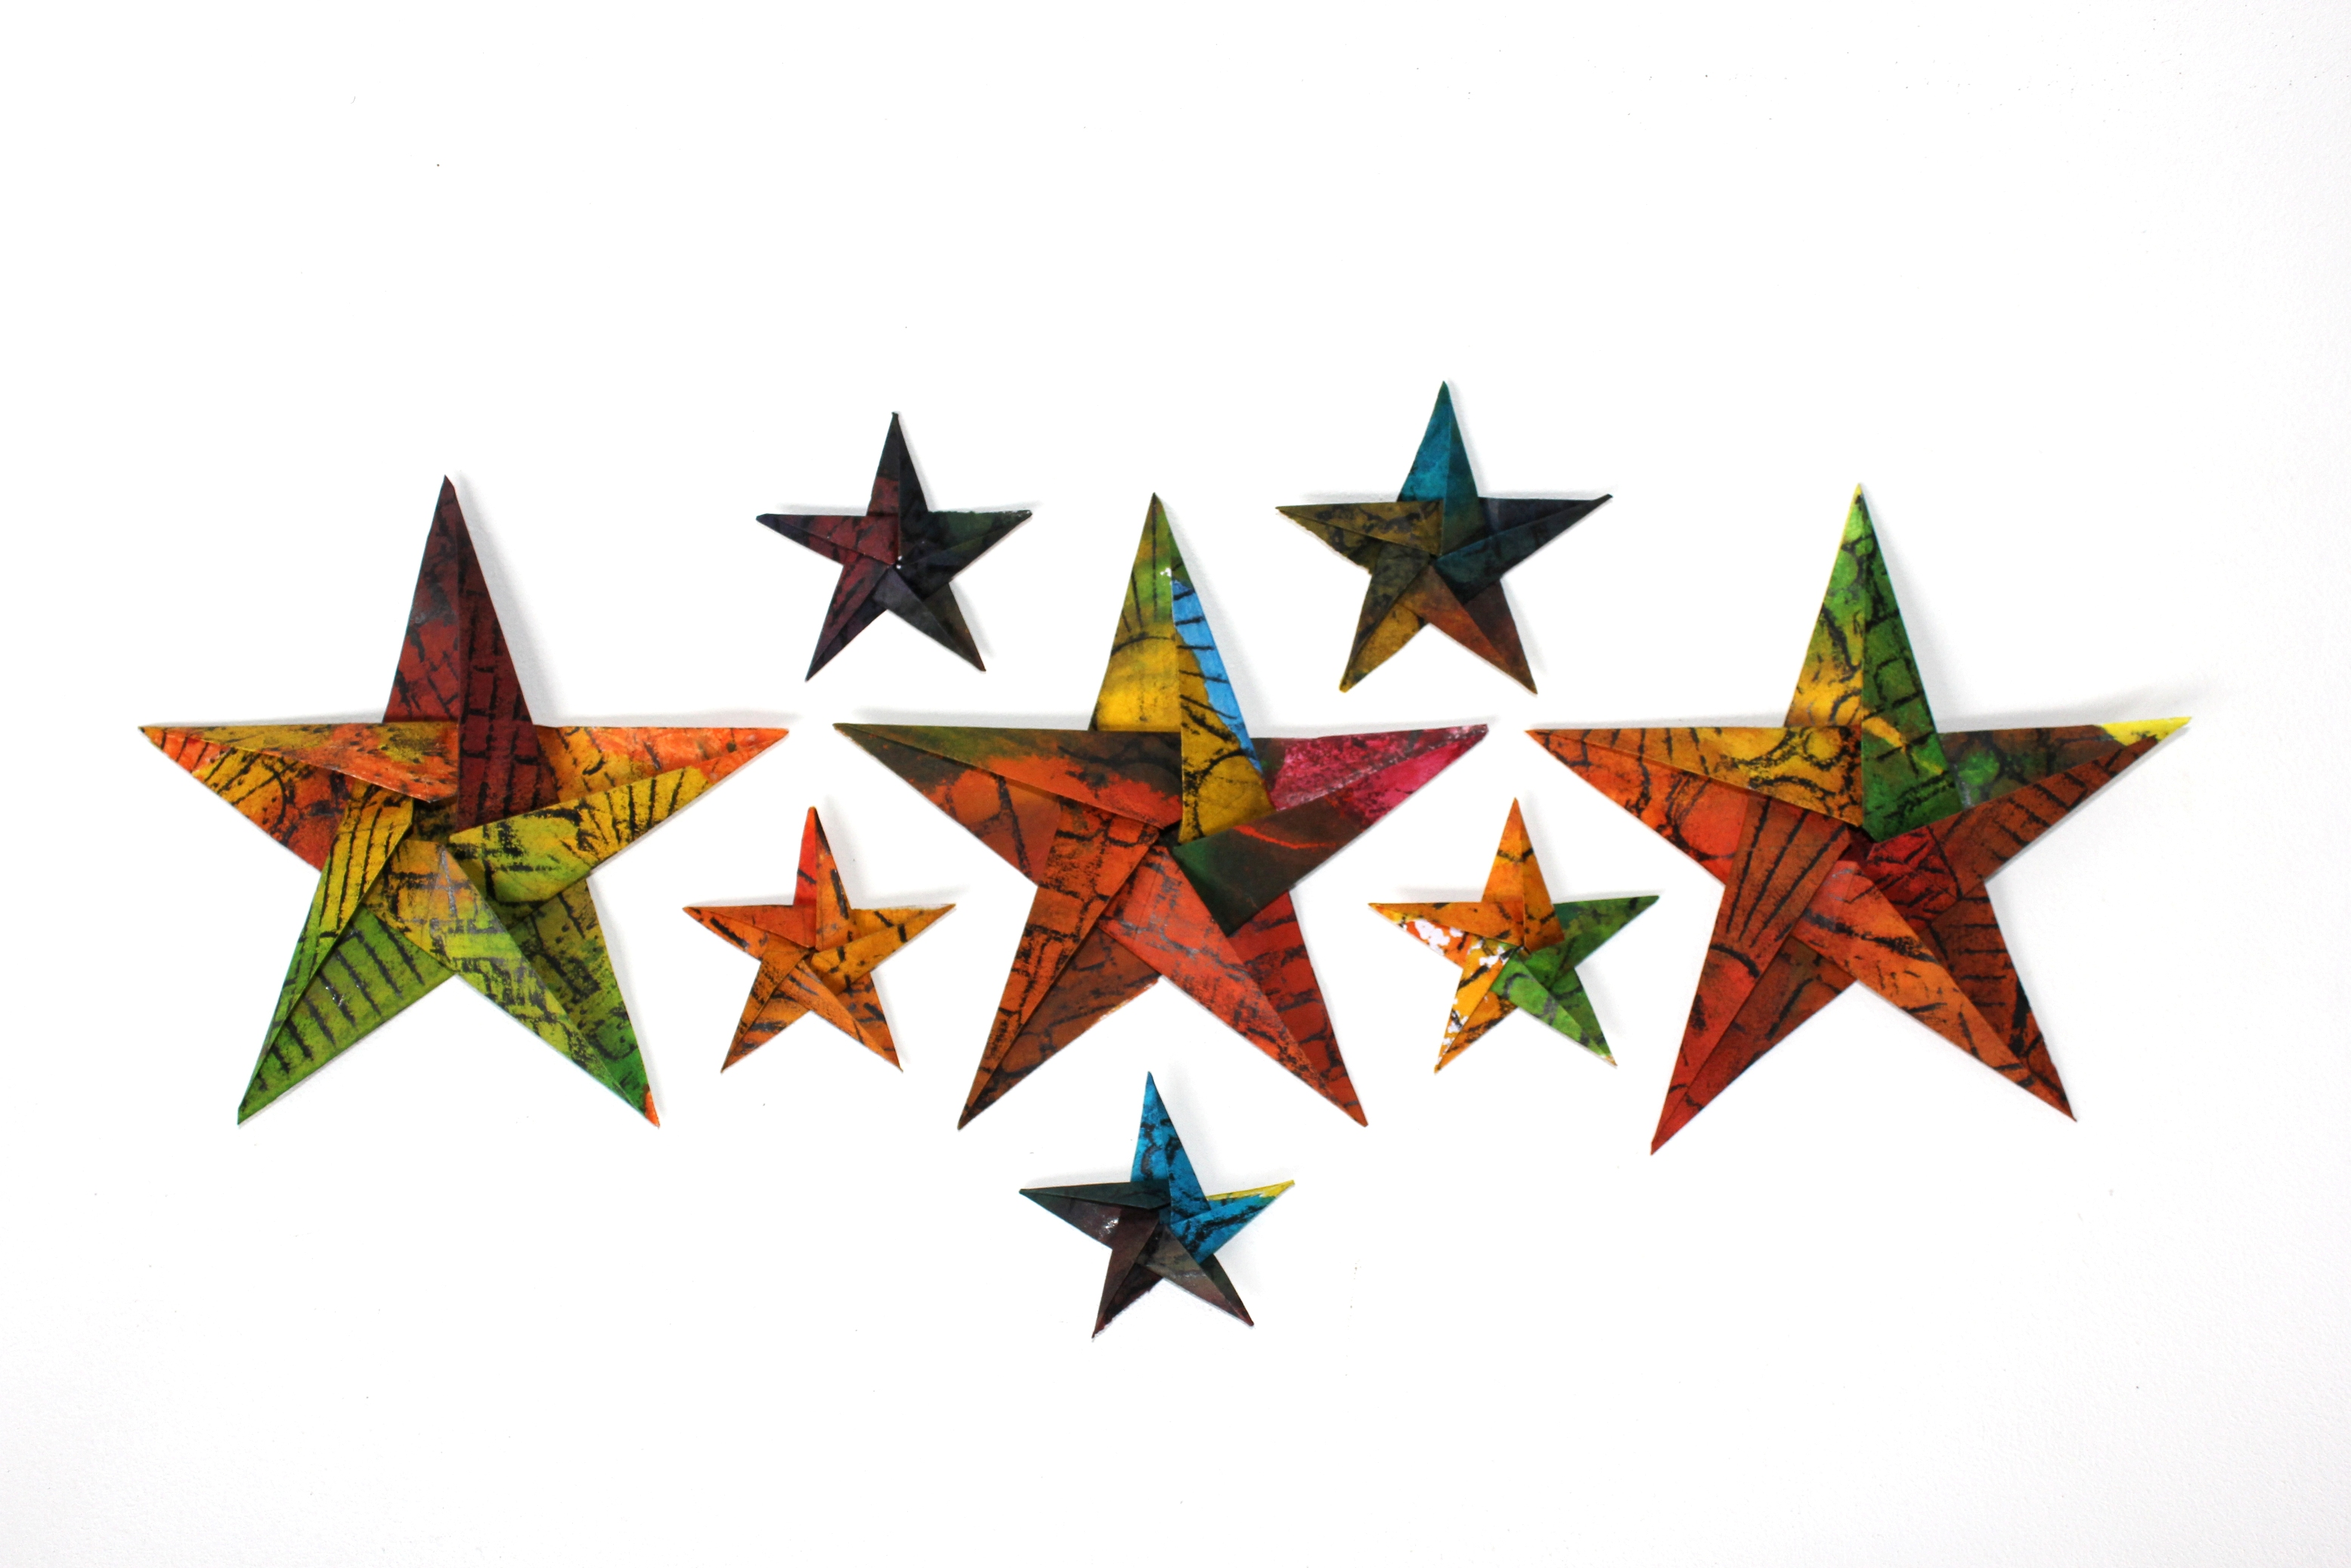 The Brightest Star Holiday Workshops